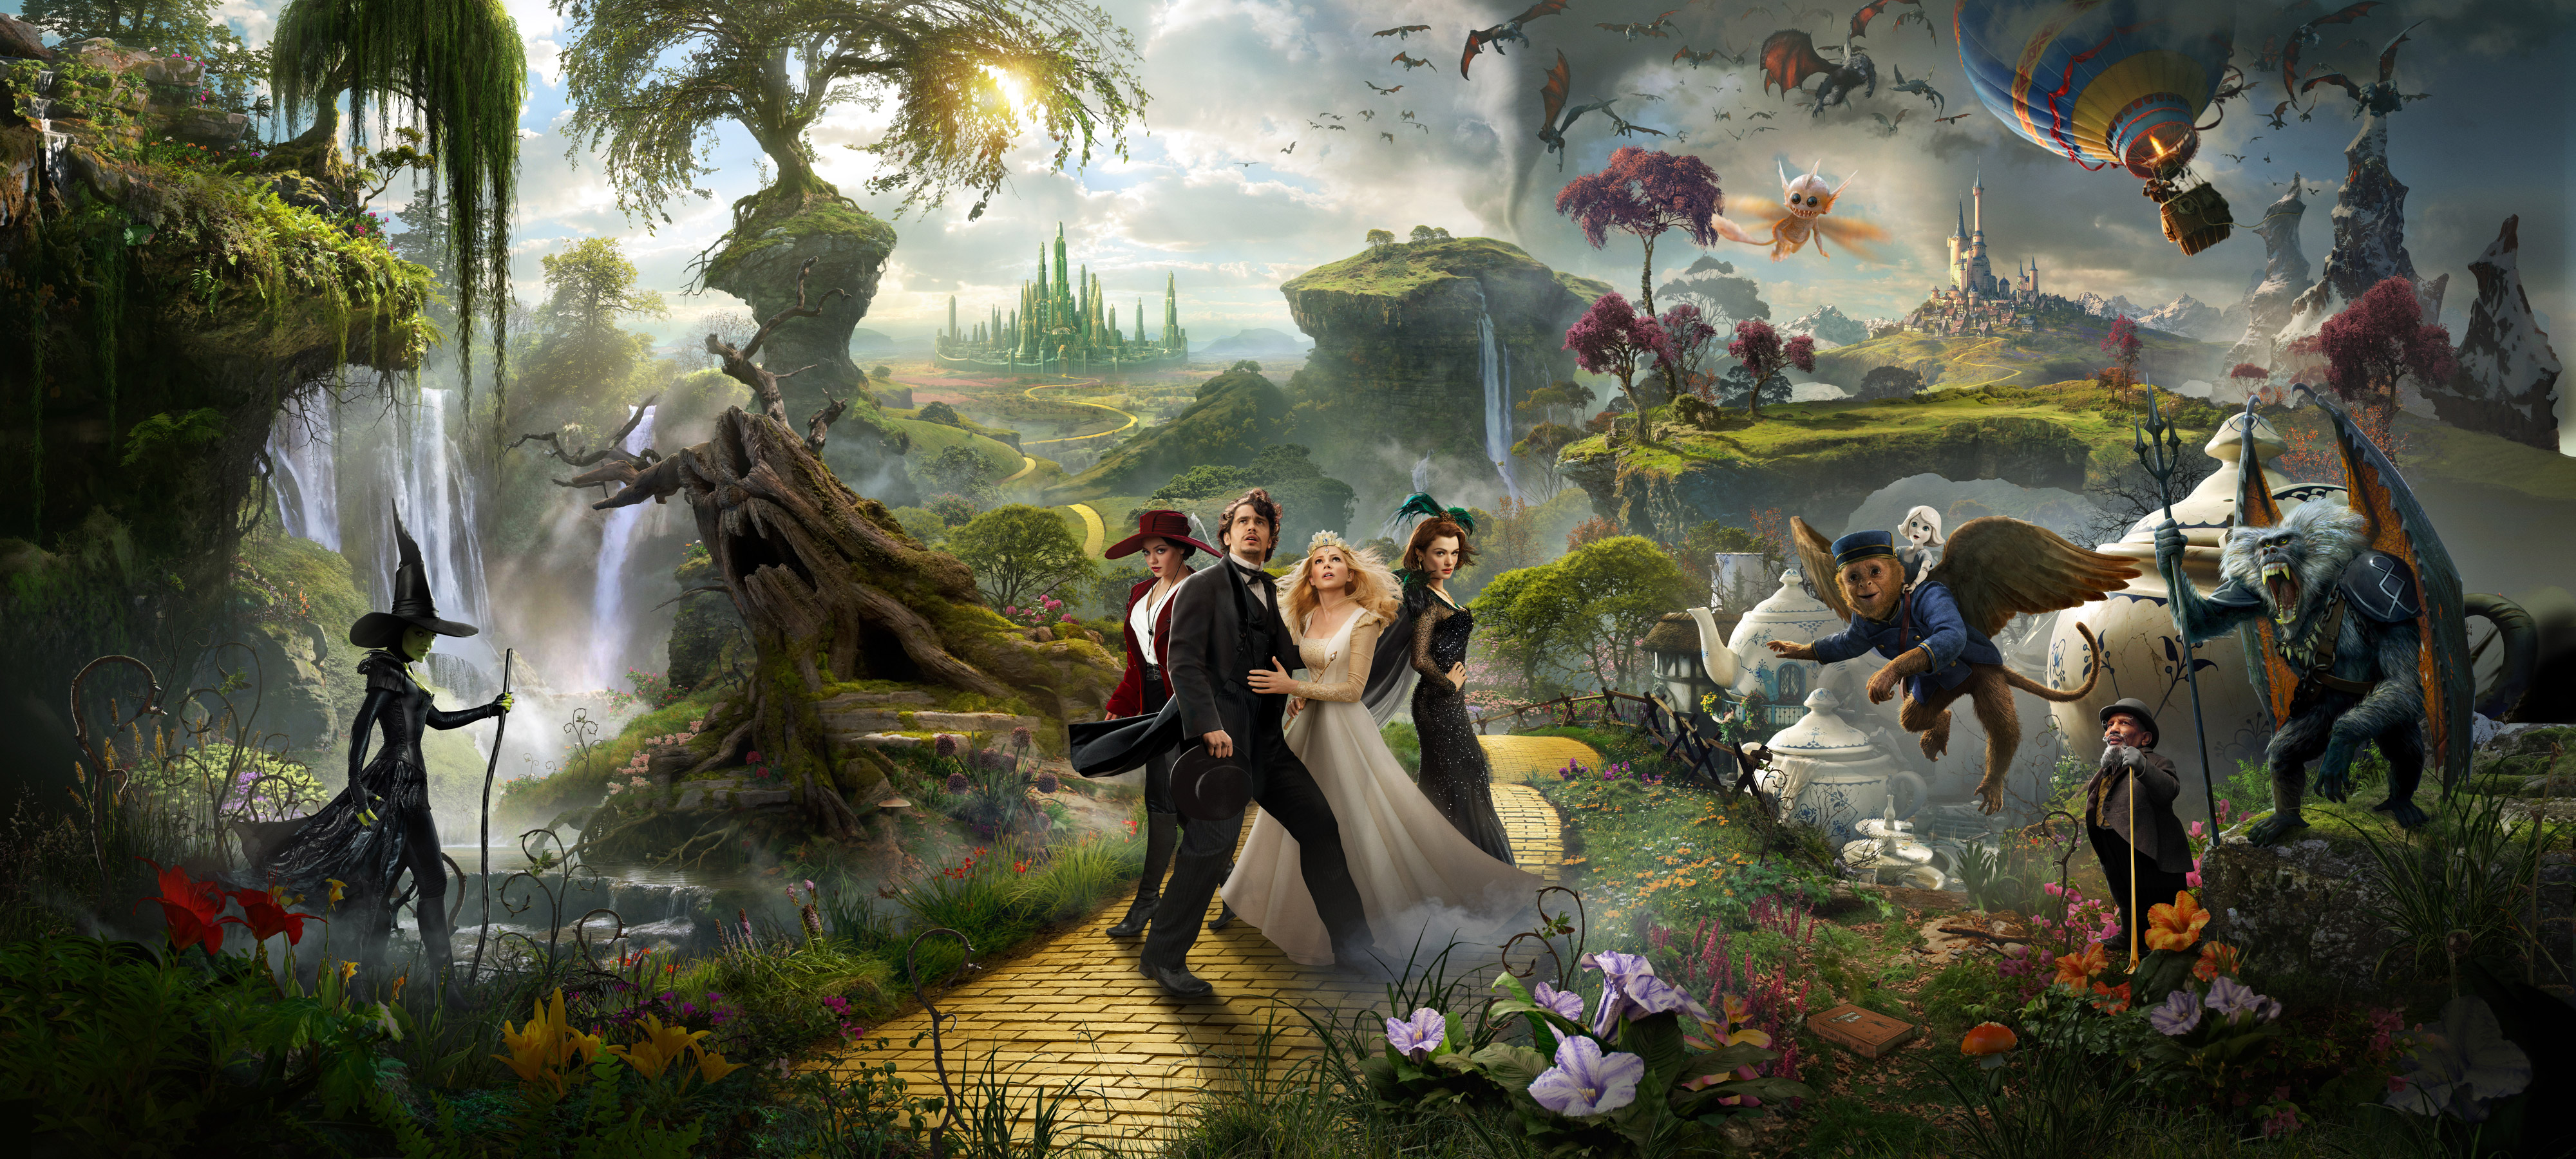 Oz the great and powerful hd wallpapers all hd wallpapers - The wizard of oz hd ...